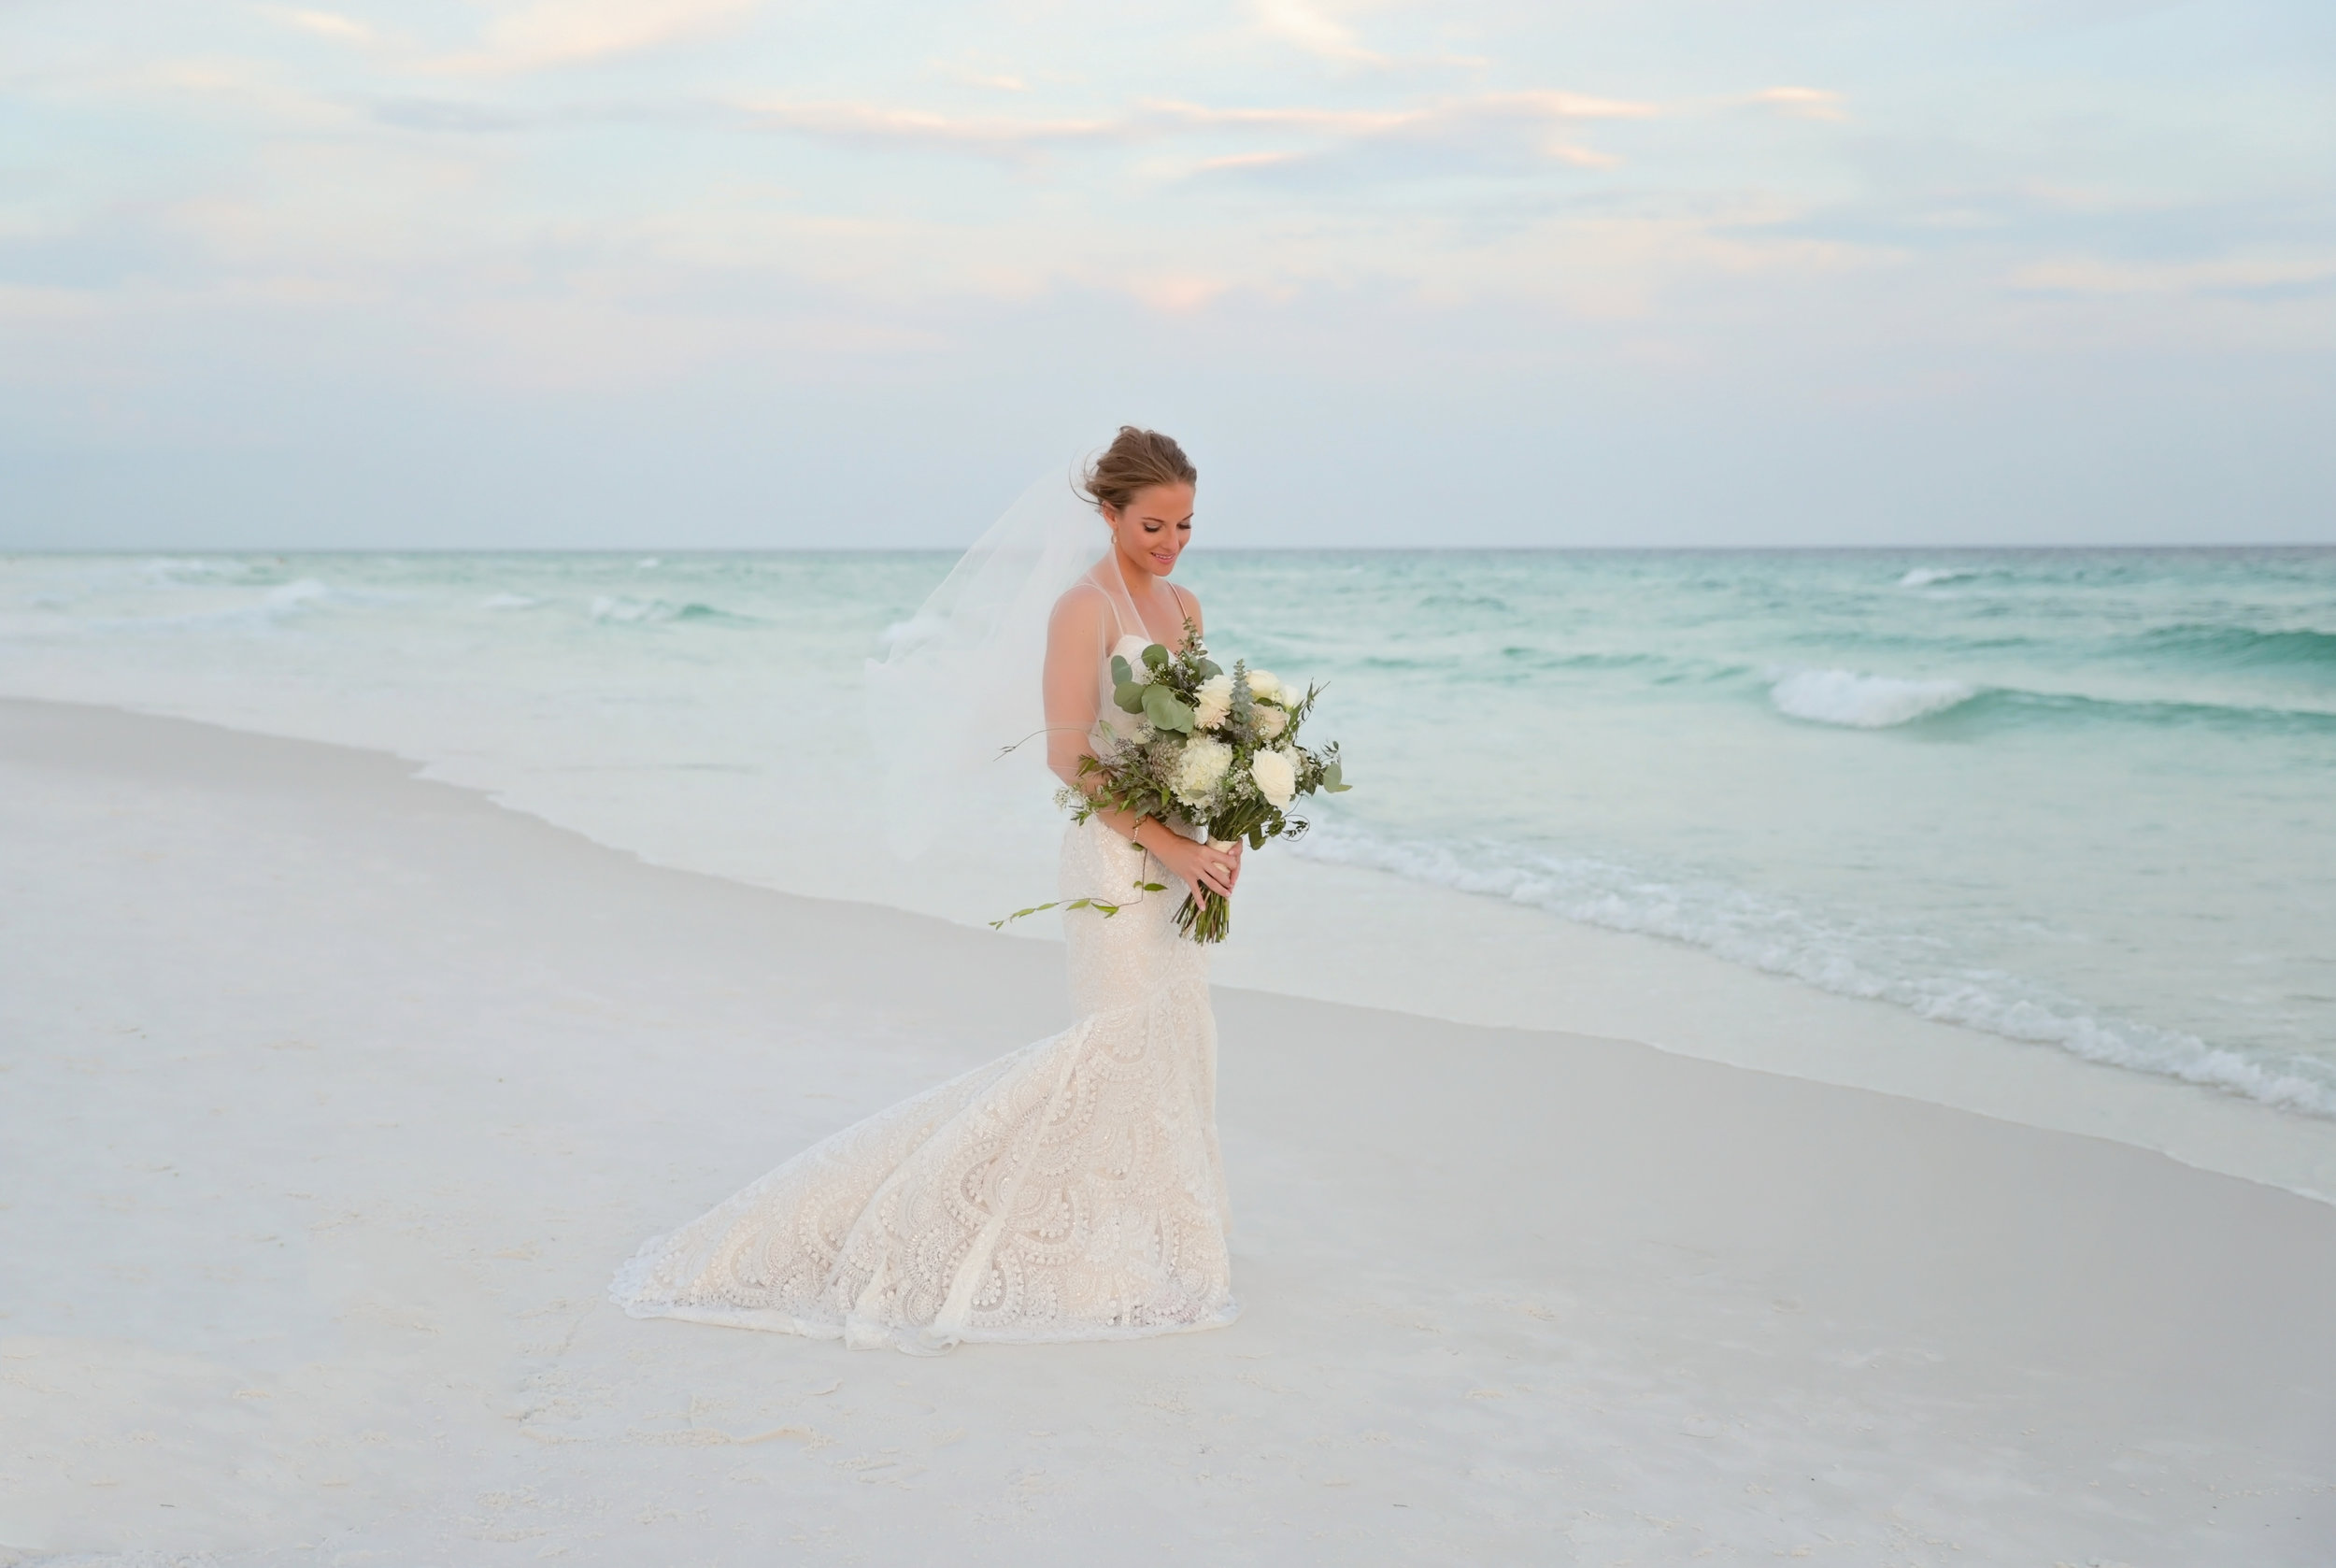 bridal boutique destin florida.jpg